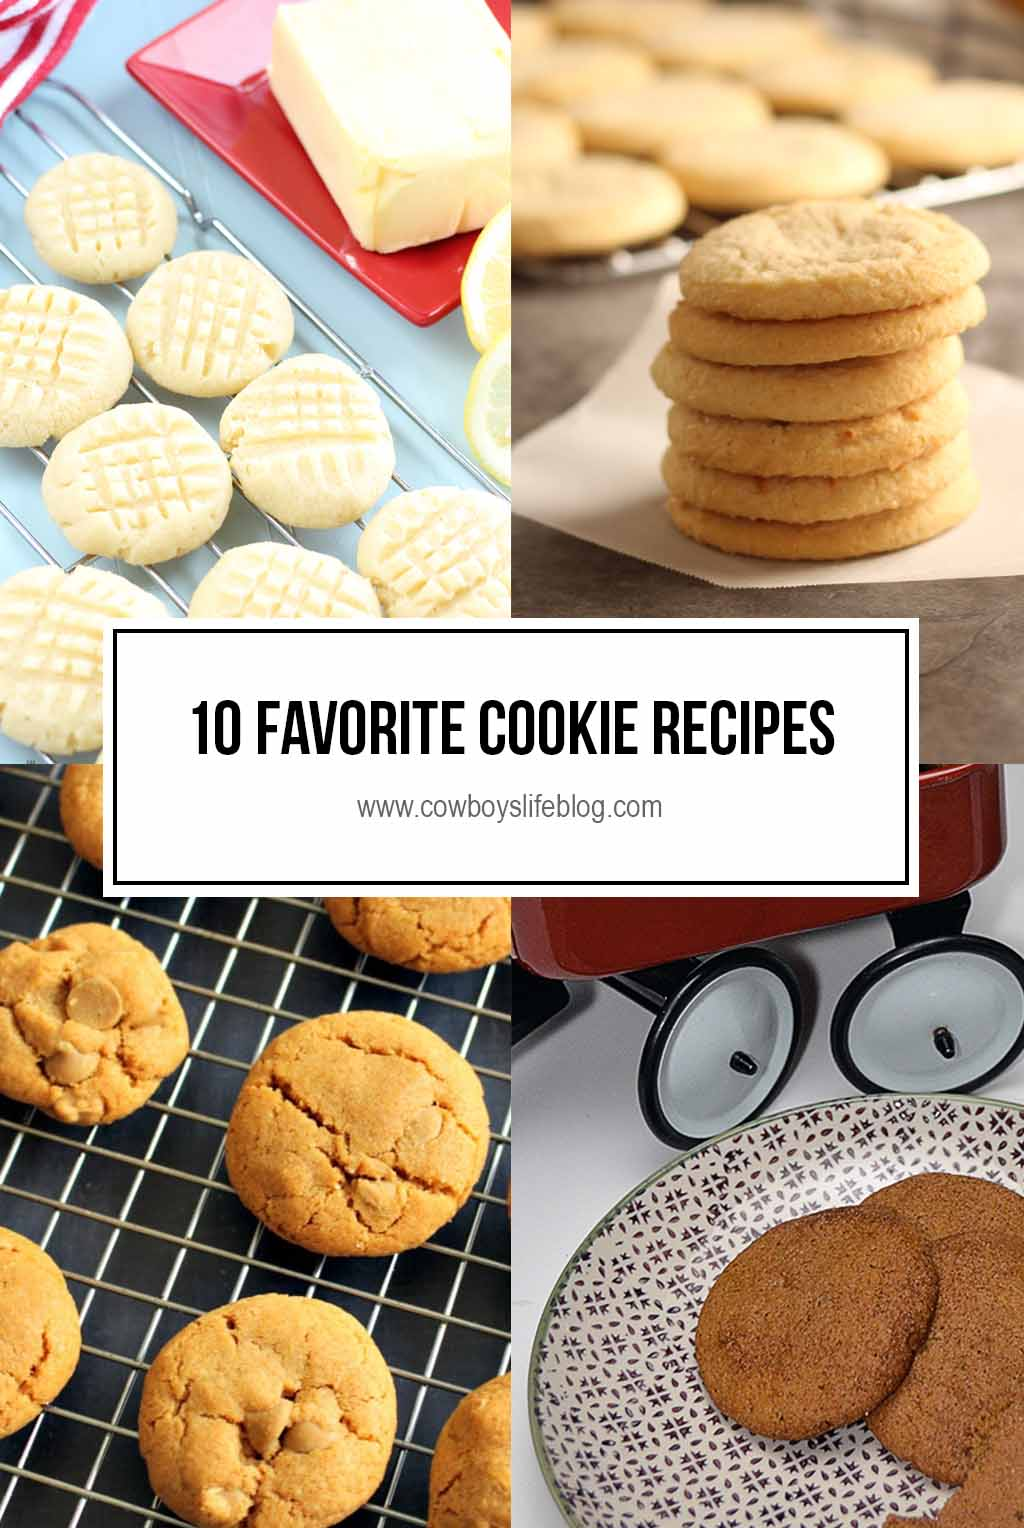 My Top 10 Favorite Cookie Recipes | Cookie Recipes | Baking | Desserts #cookierecipes #bakingrecipes #cookies